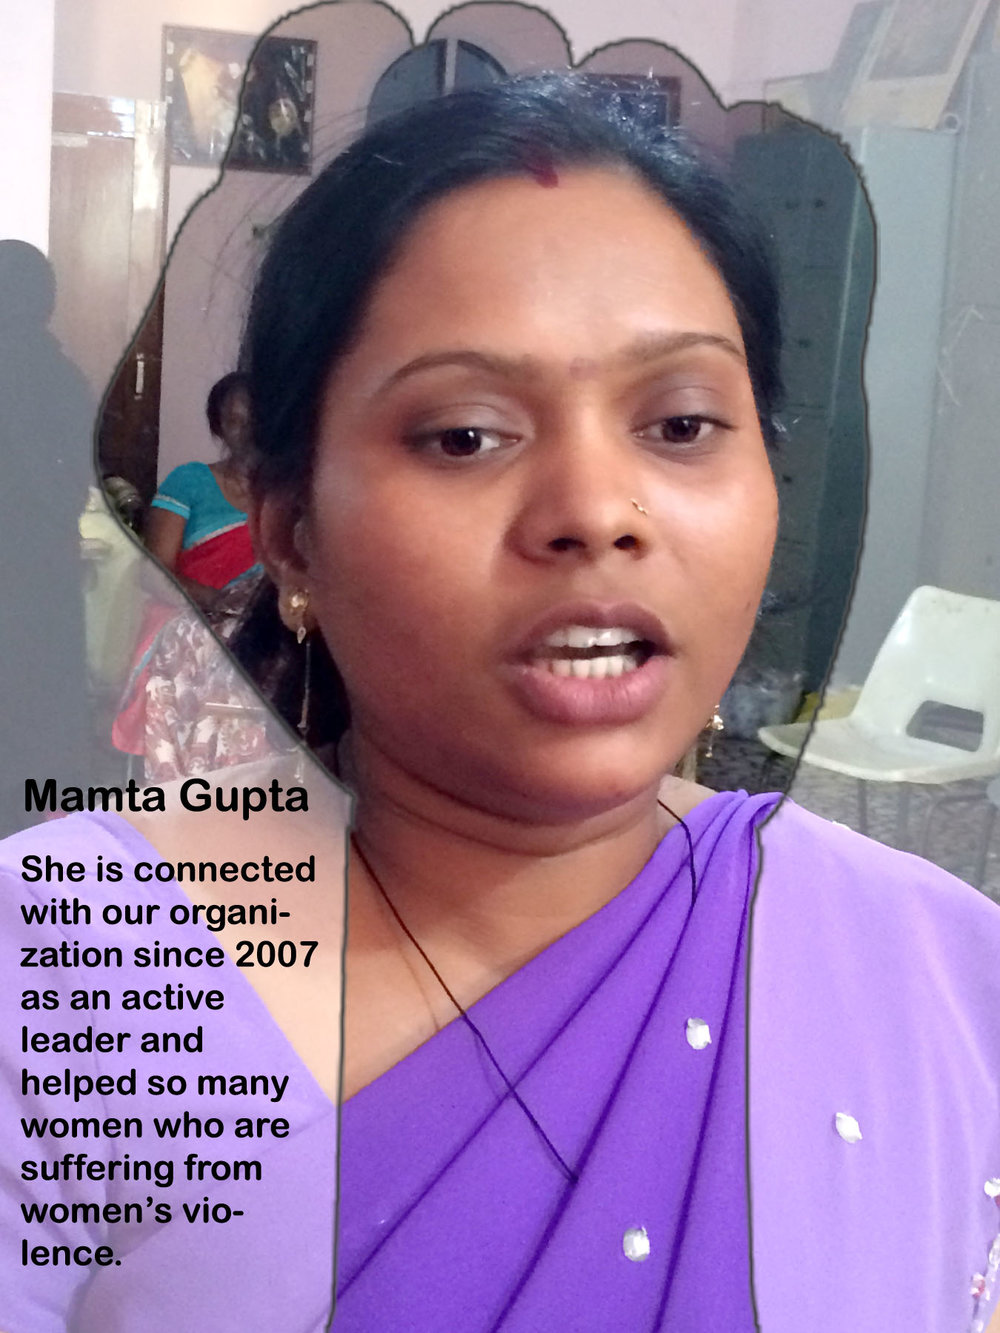 Mamta gupta woman human right defender--.jpg